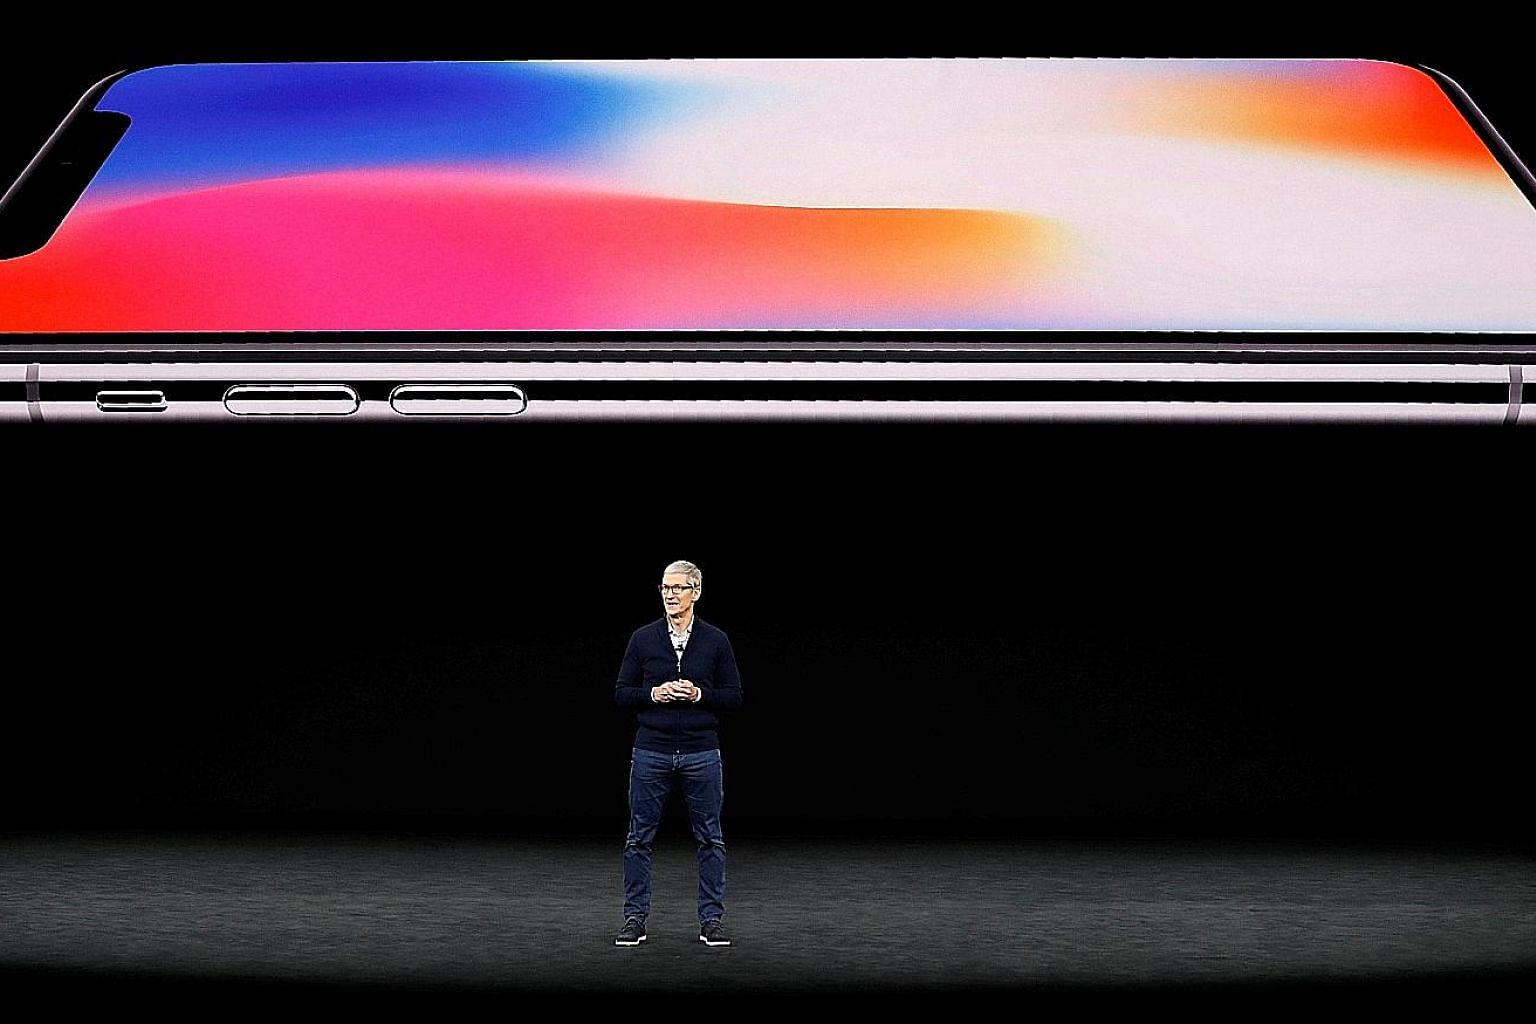 Mr Tim Cook, chief executive officer of Apple, speaks about the iPhone X during a launch event in Cupertino, California, in September last year.